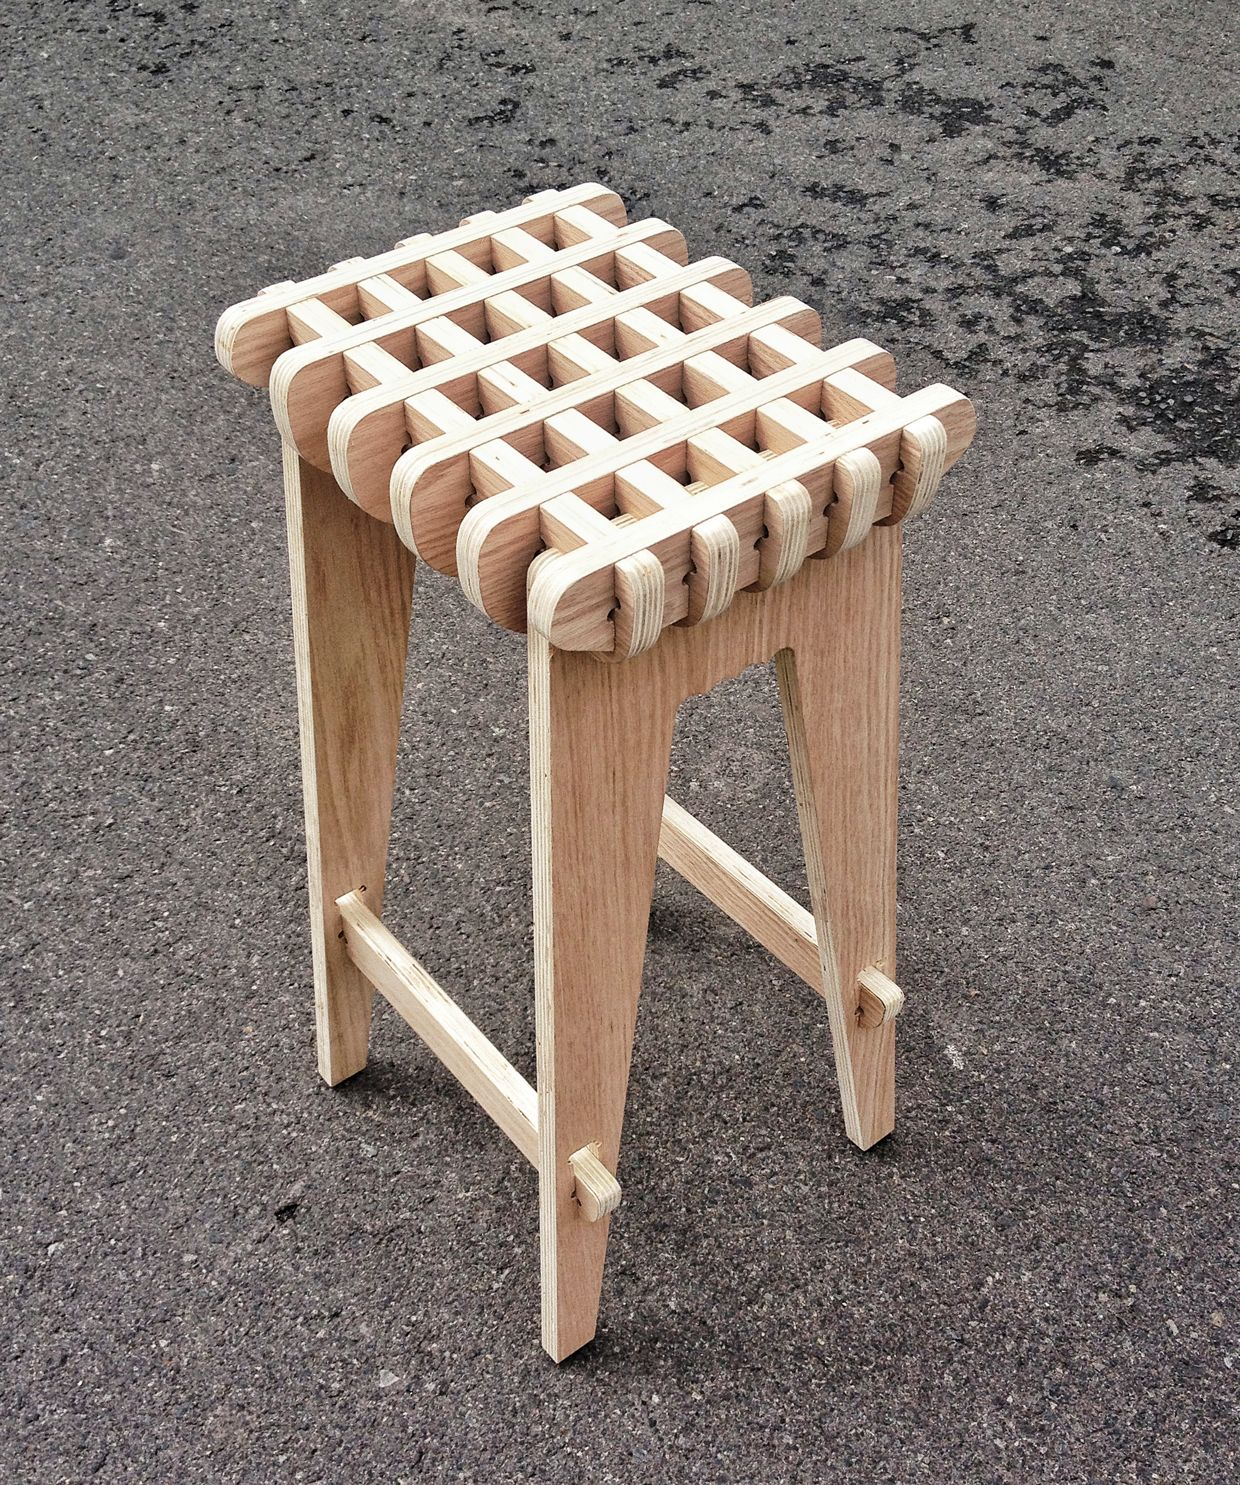 Prime Waffle Stool On Behance Wood Furniture Furniture Design Caraccident5 Cool Chair Designs And Ideas Caraccident5Info